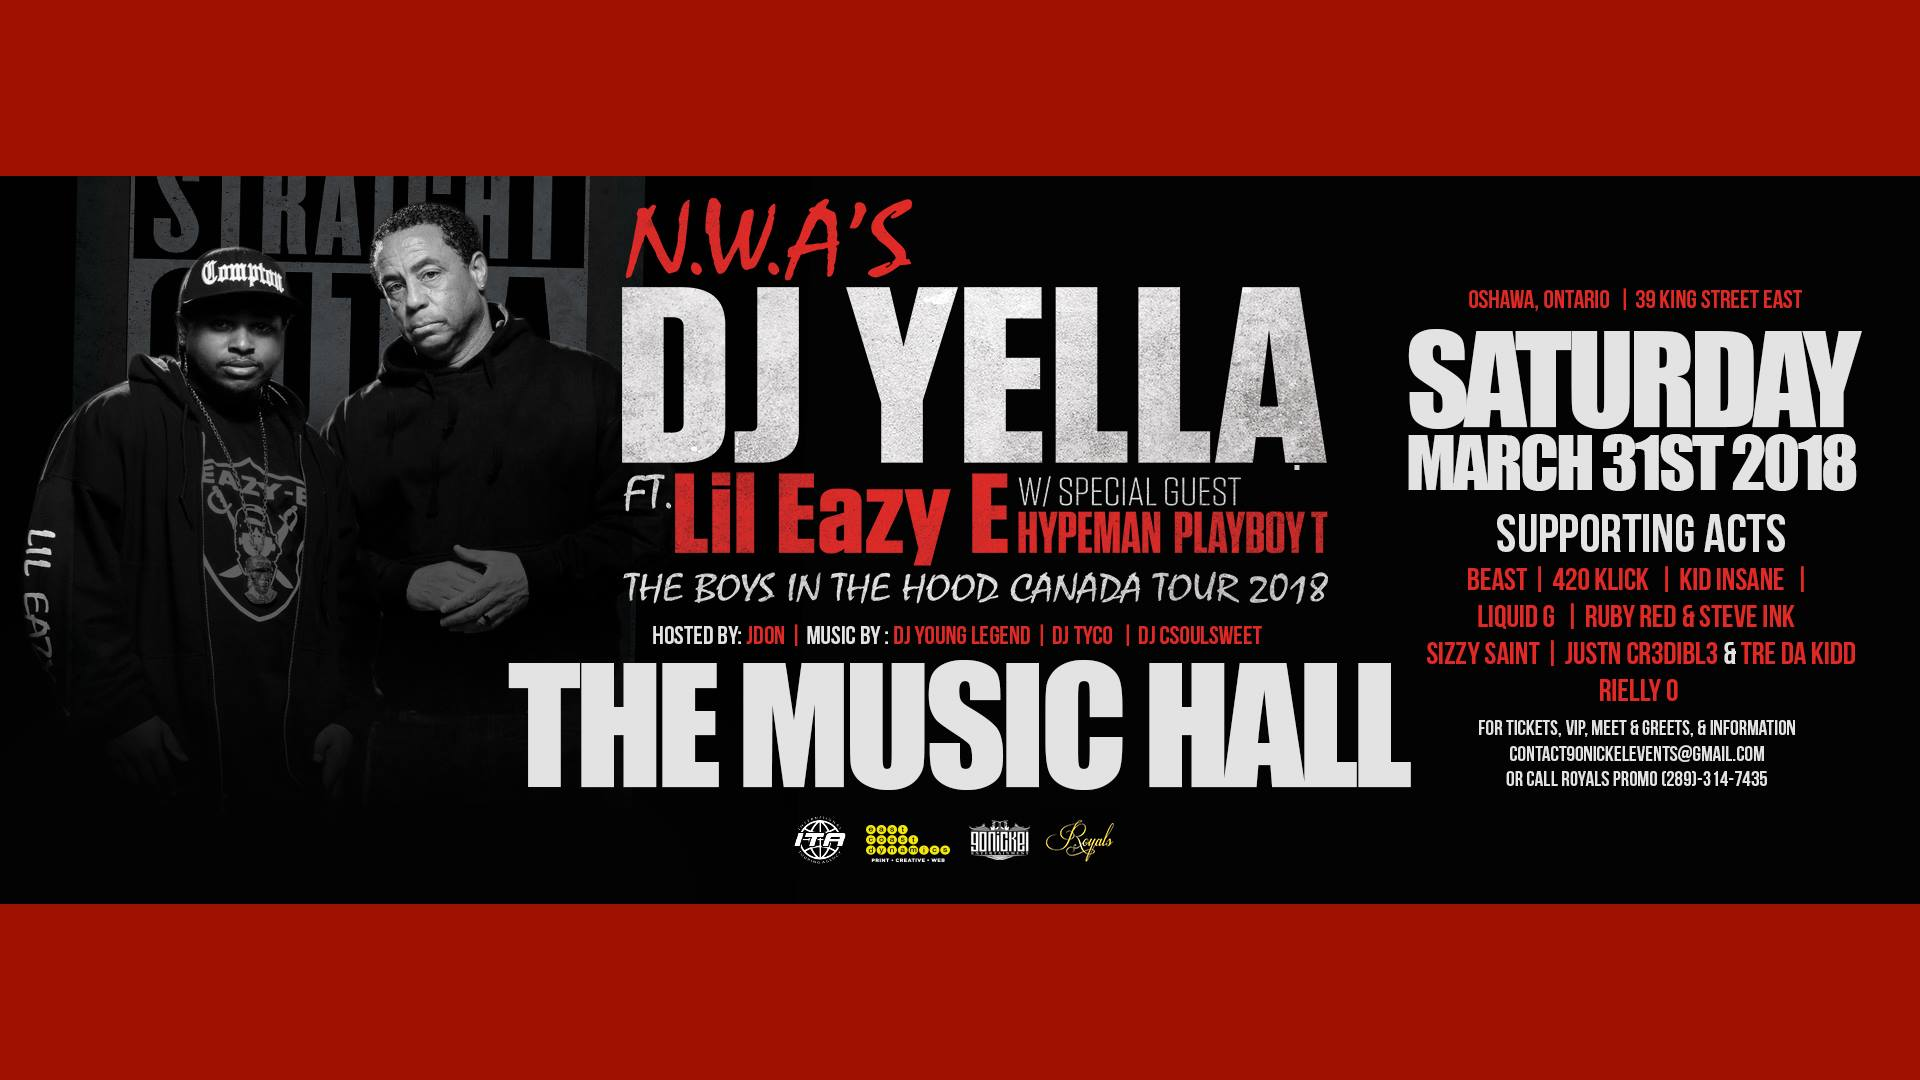 The Boys In The Hood Canada Tour w/ NWA's DJ Yella, & Lil Eazy E